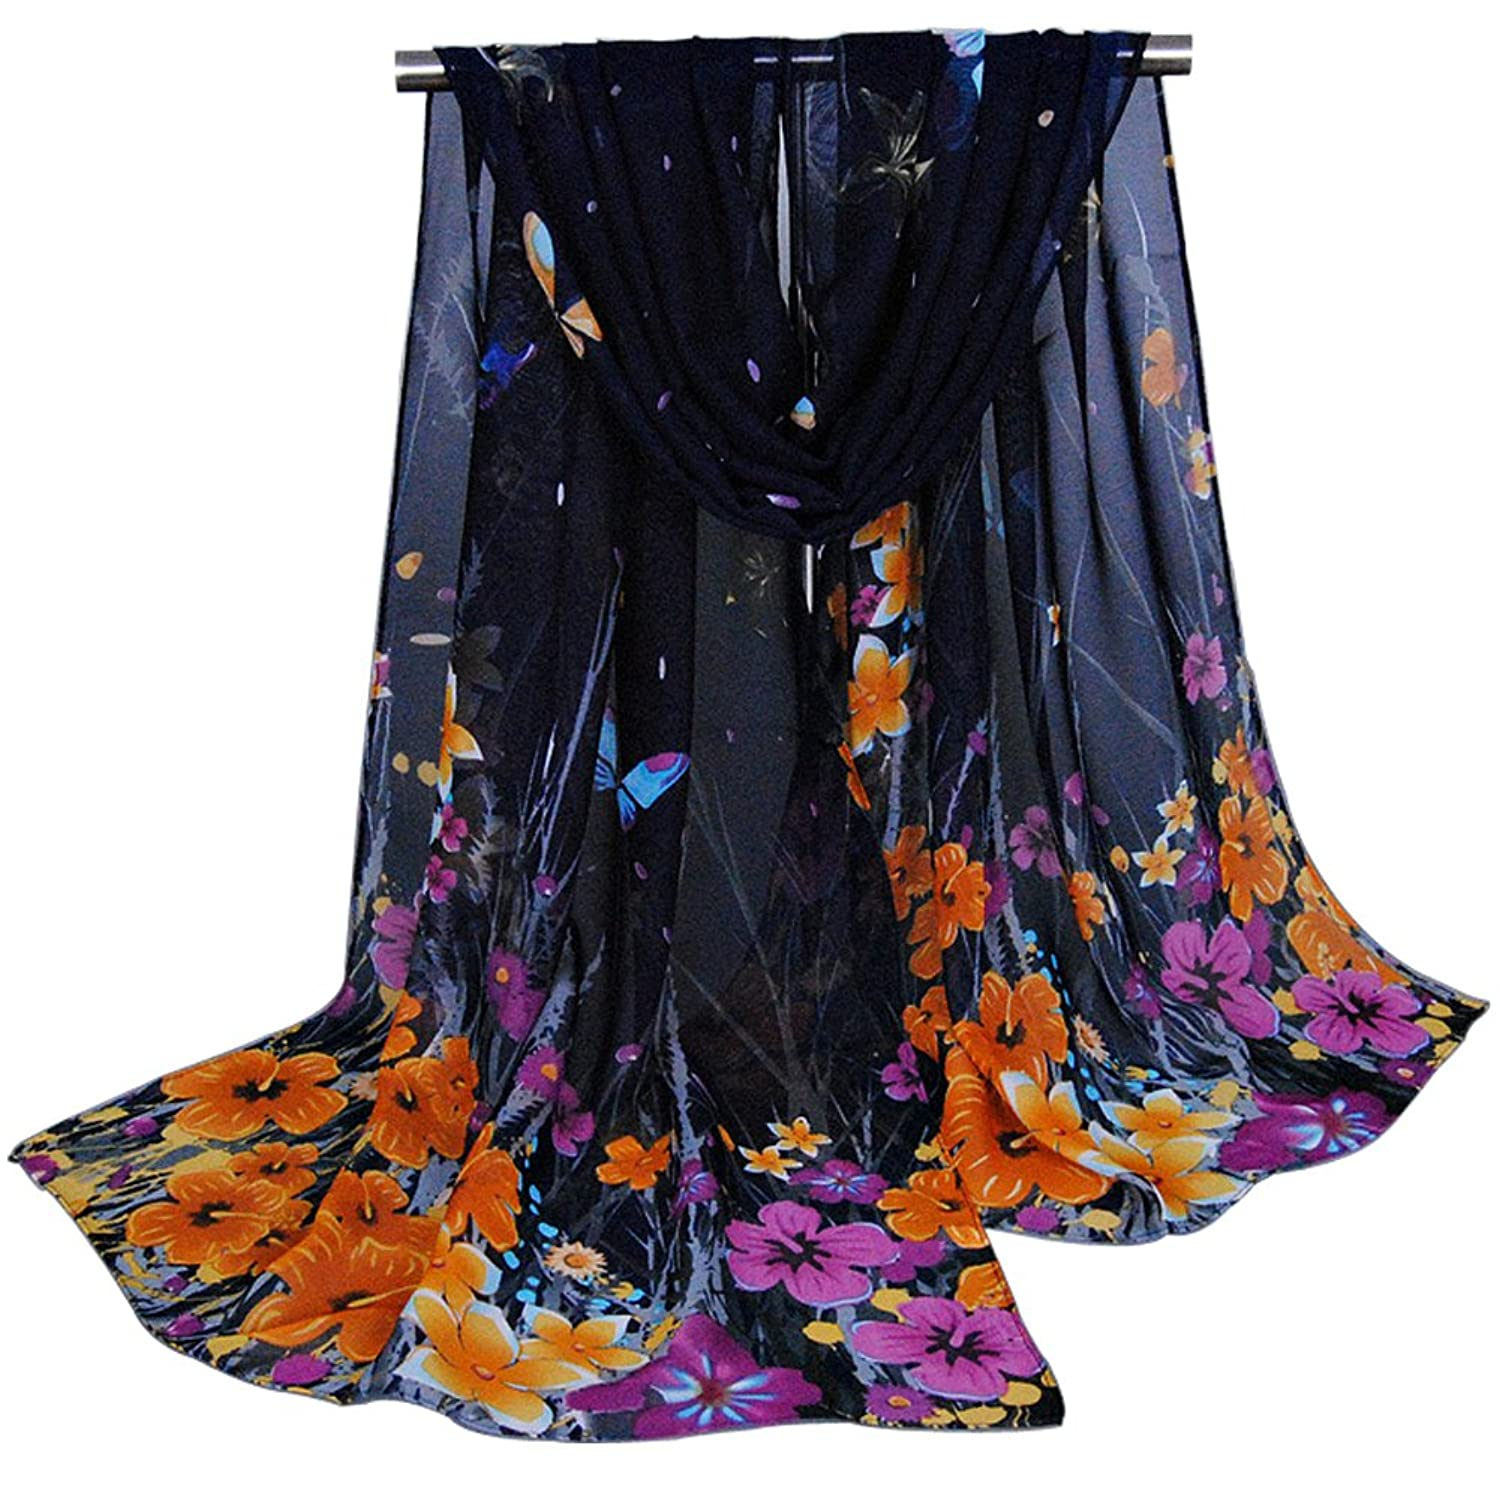 Alysee Women Adorable Floral/Butterfly Print Classy Chiffon Long Scarf Shawl Wrap